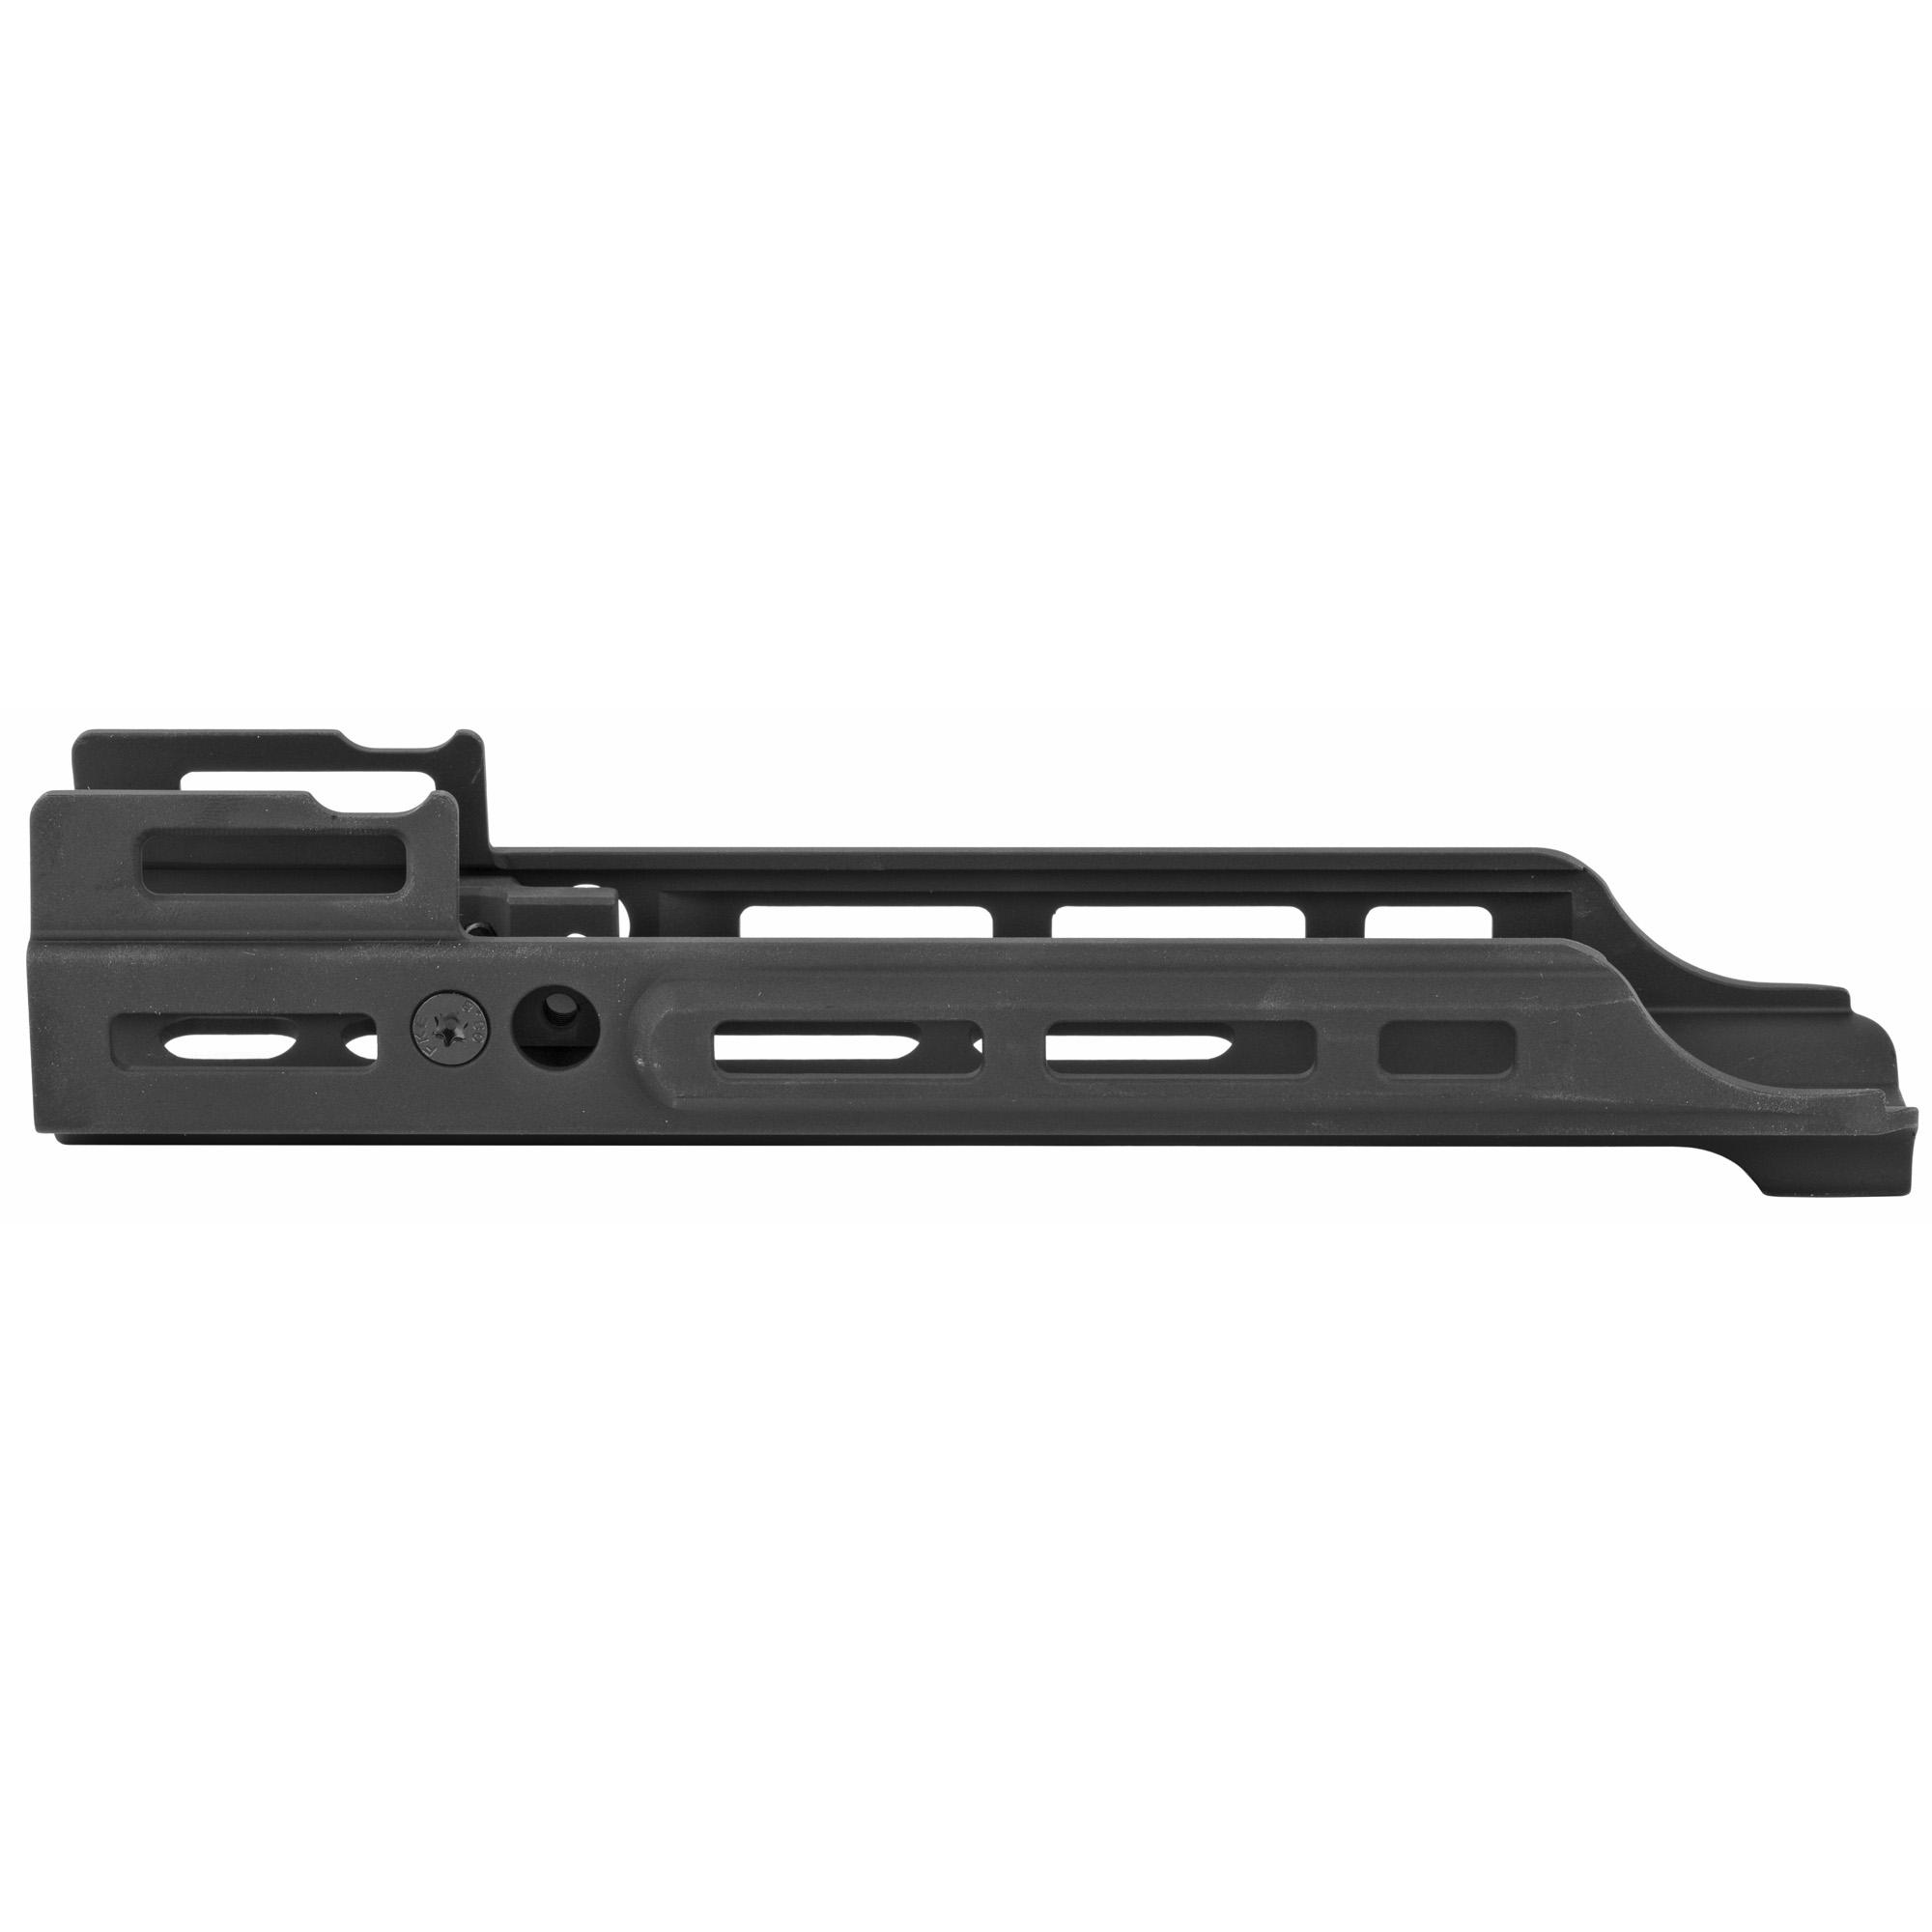 Kinetic Development Group, LLC Kinetic Development Group Scar Mrex Mark Ii M-lok 2.2